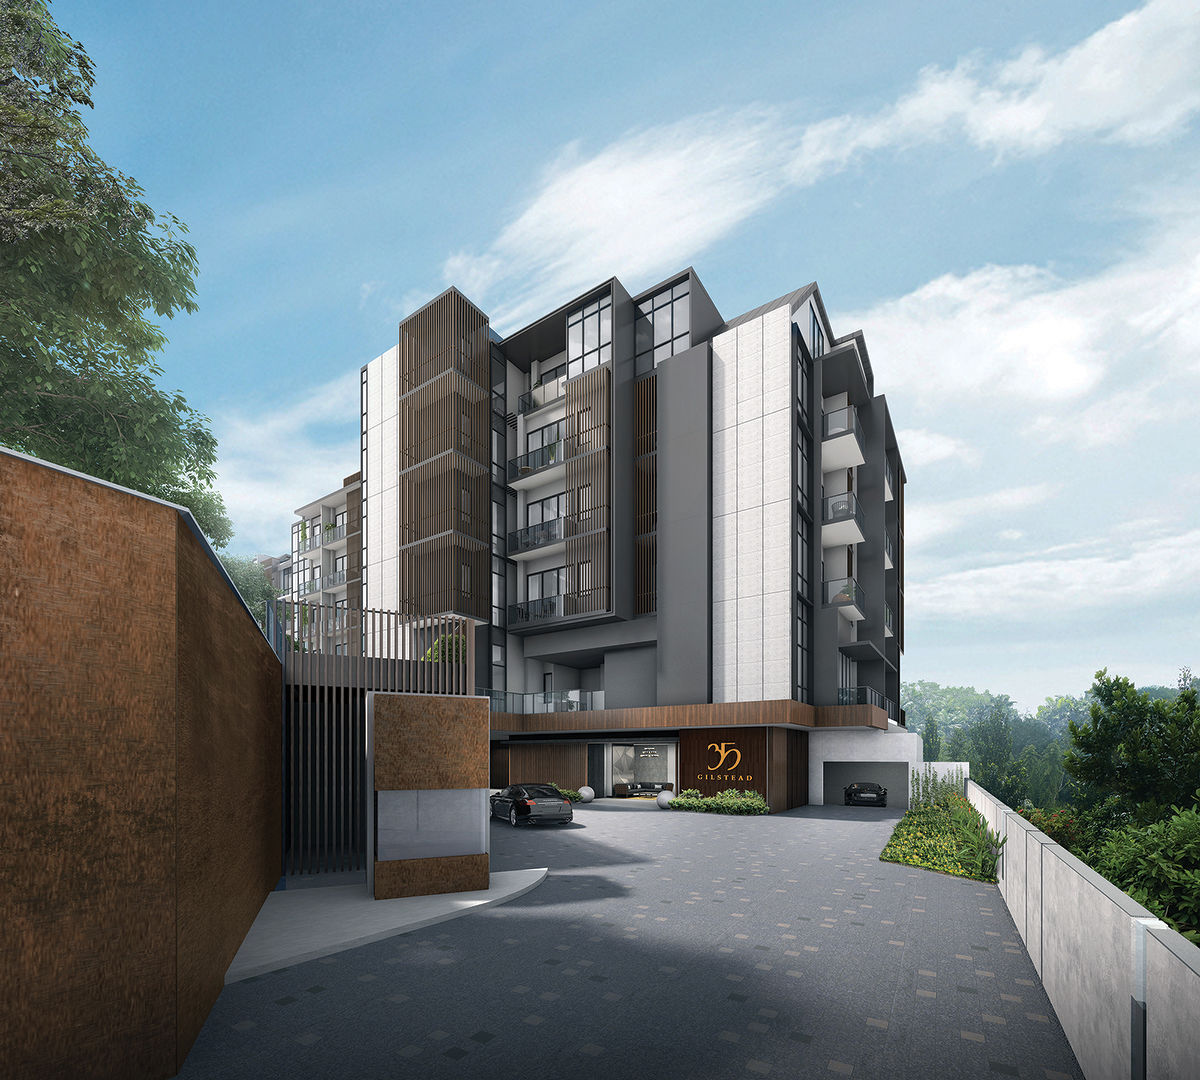 An artist impression of the entrance driveway. The condo is a short drive to shopping malls in Novena and Orchard Road